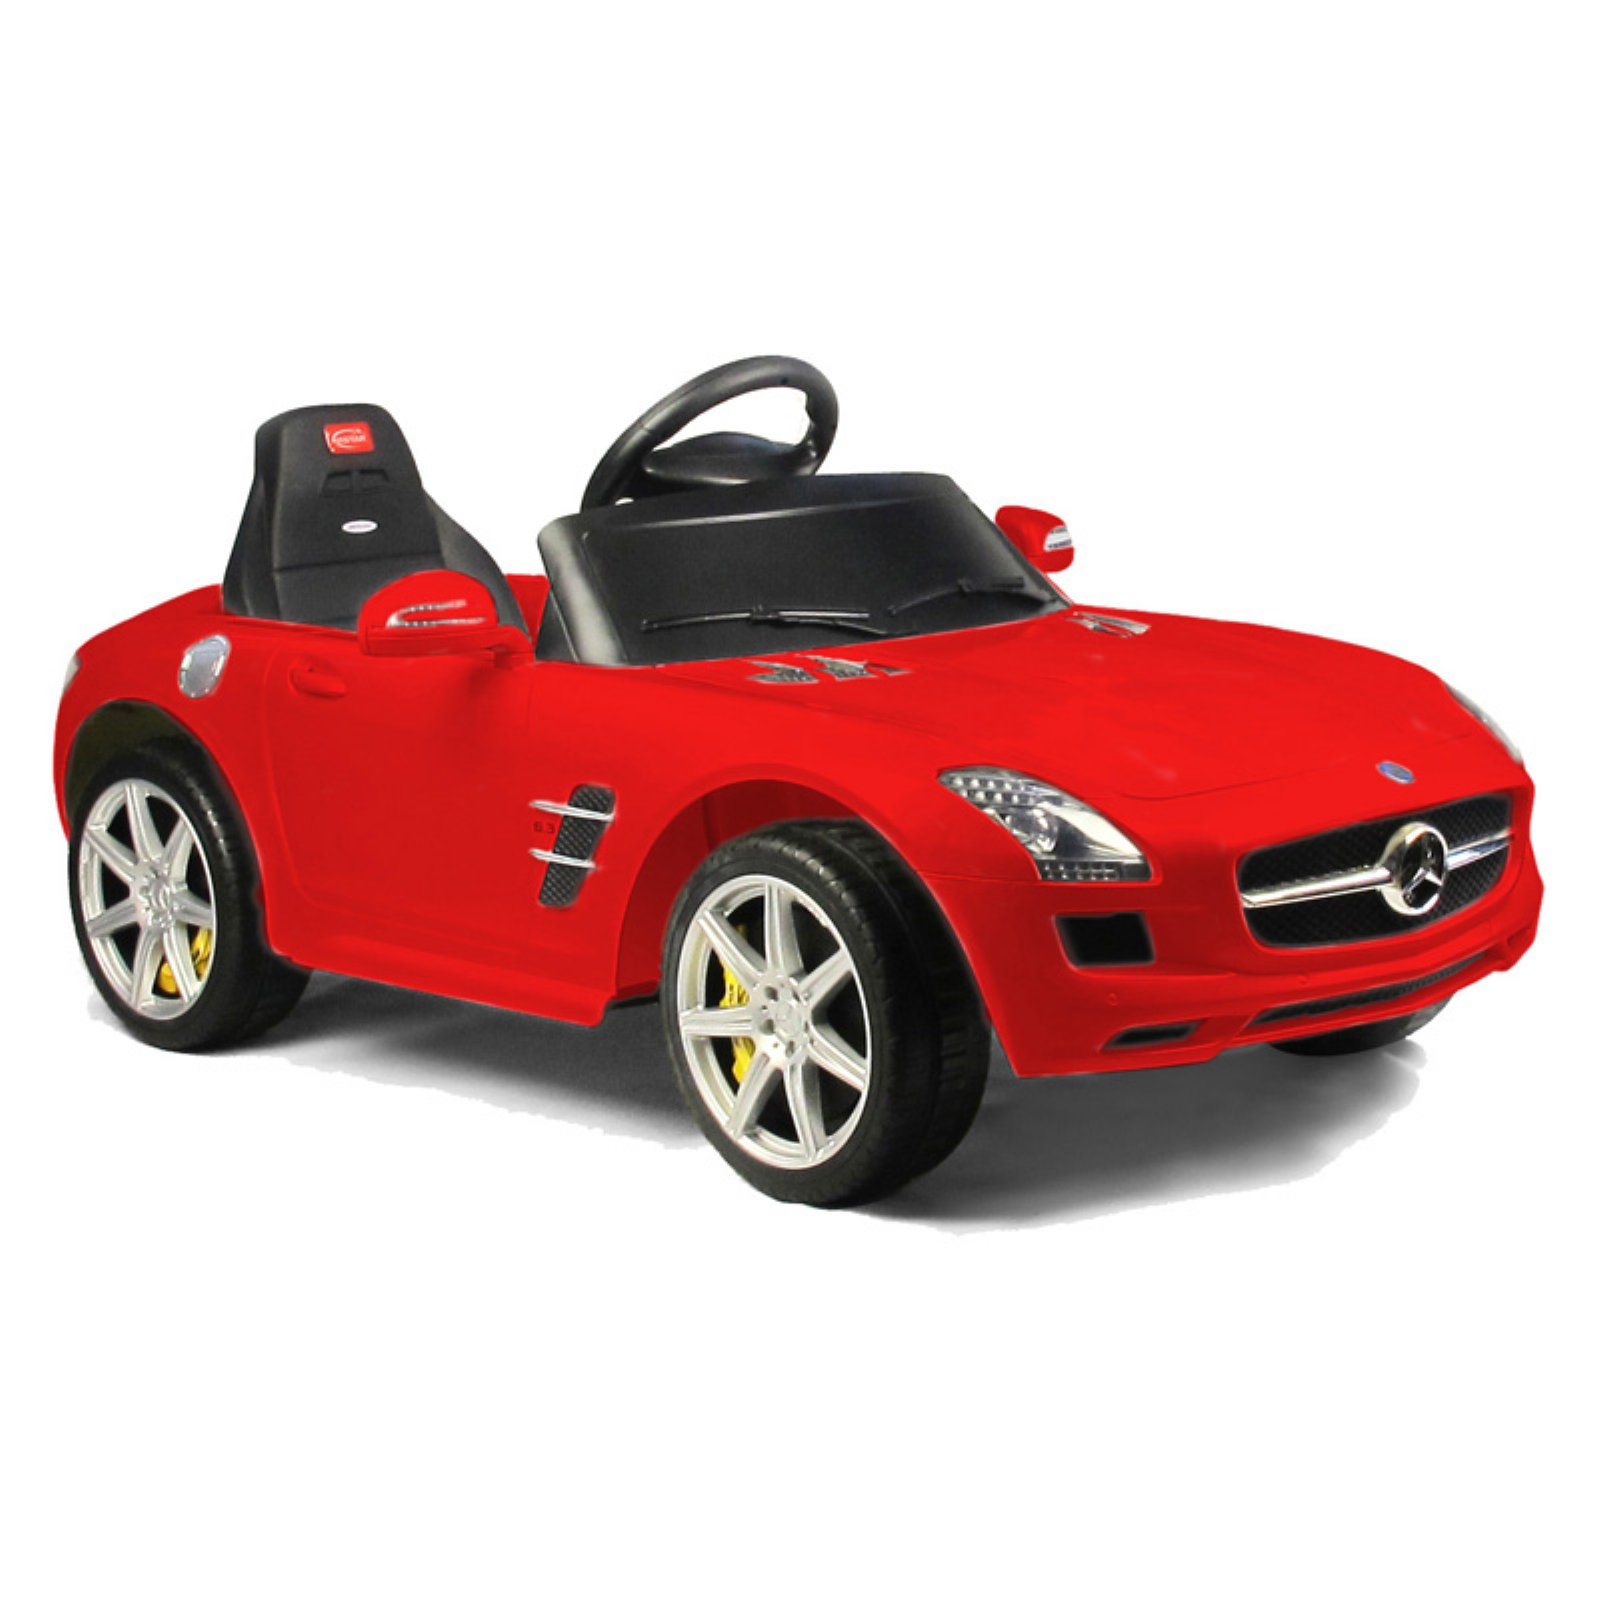 Vroom Rider Mercedes Benz SLS AMG Rastar Battery Powered Riding Toy